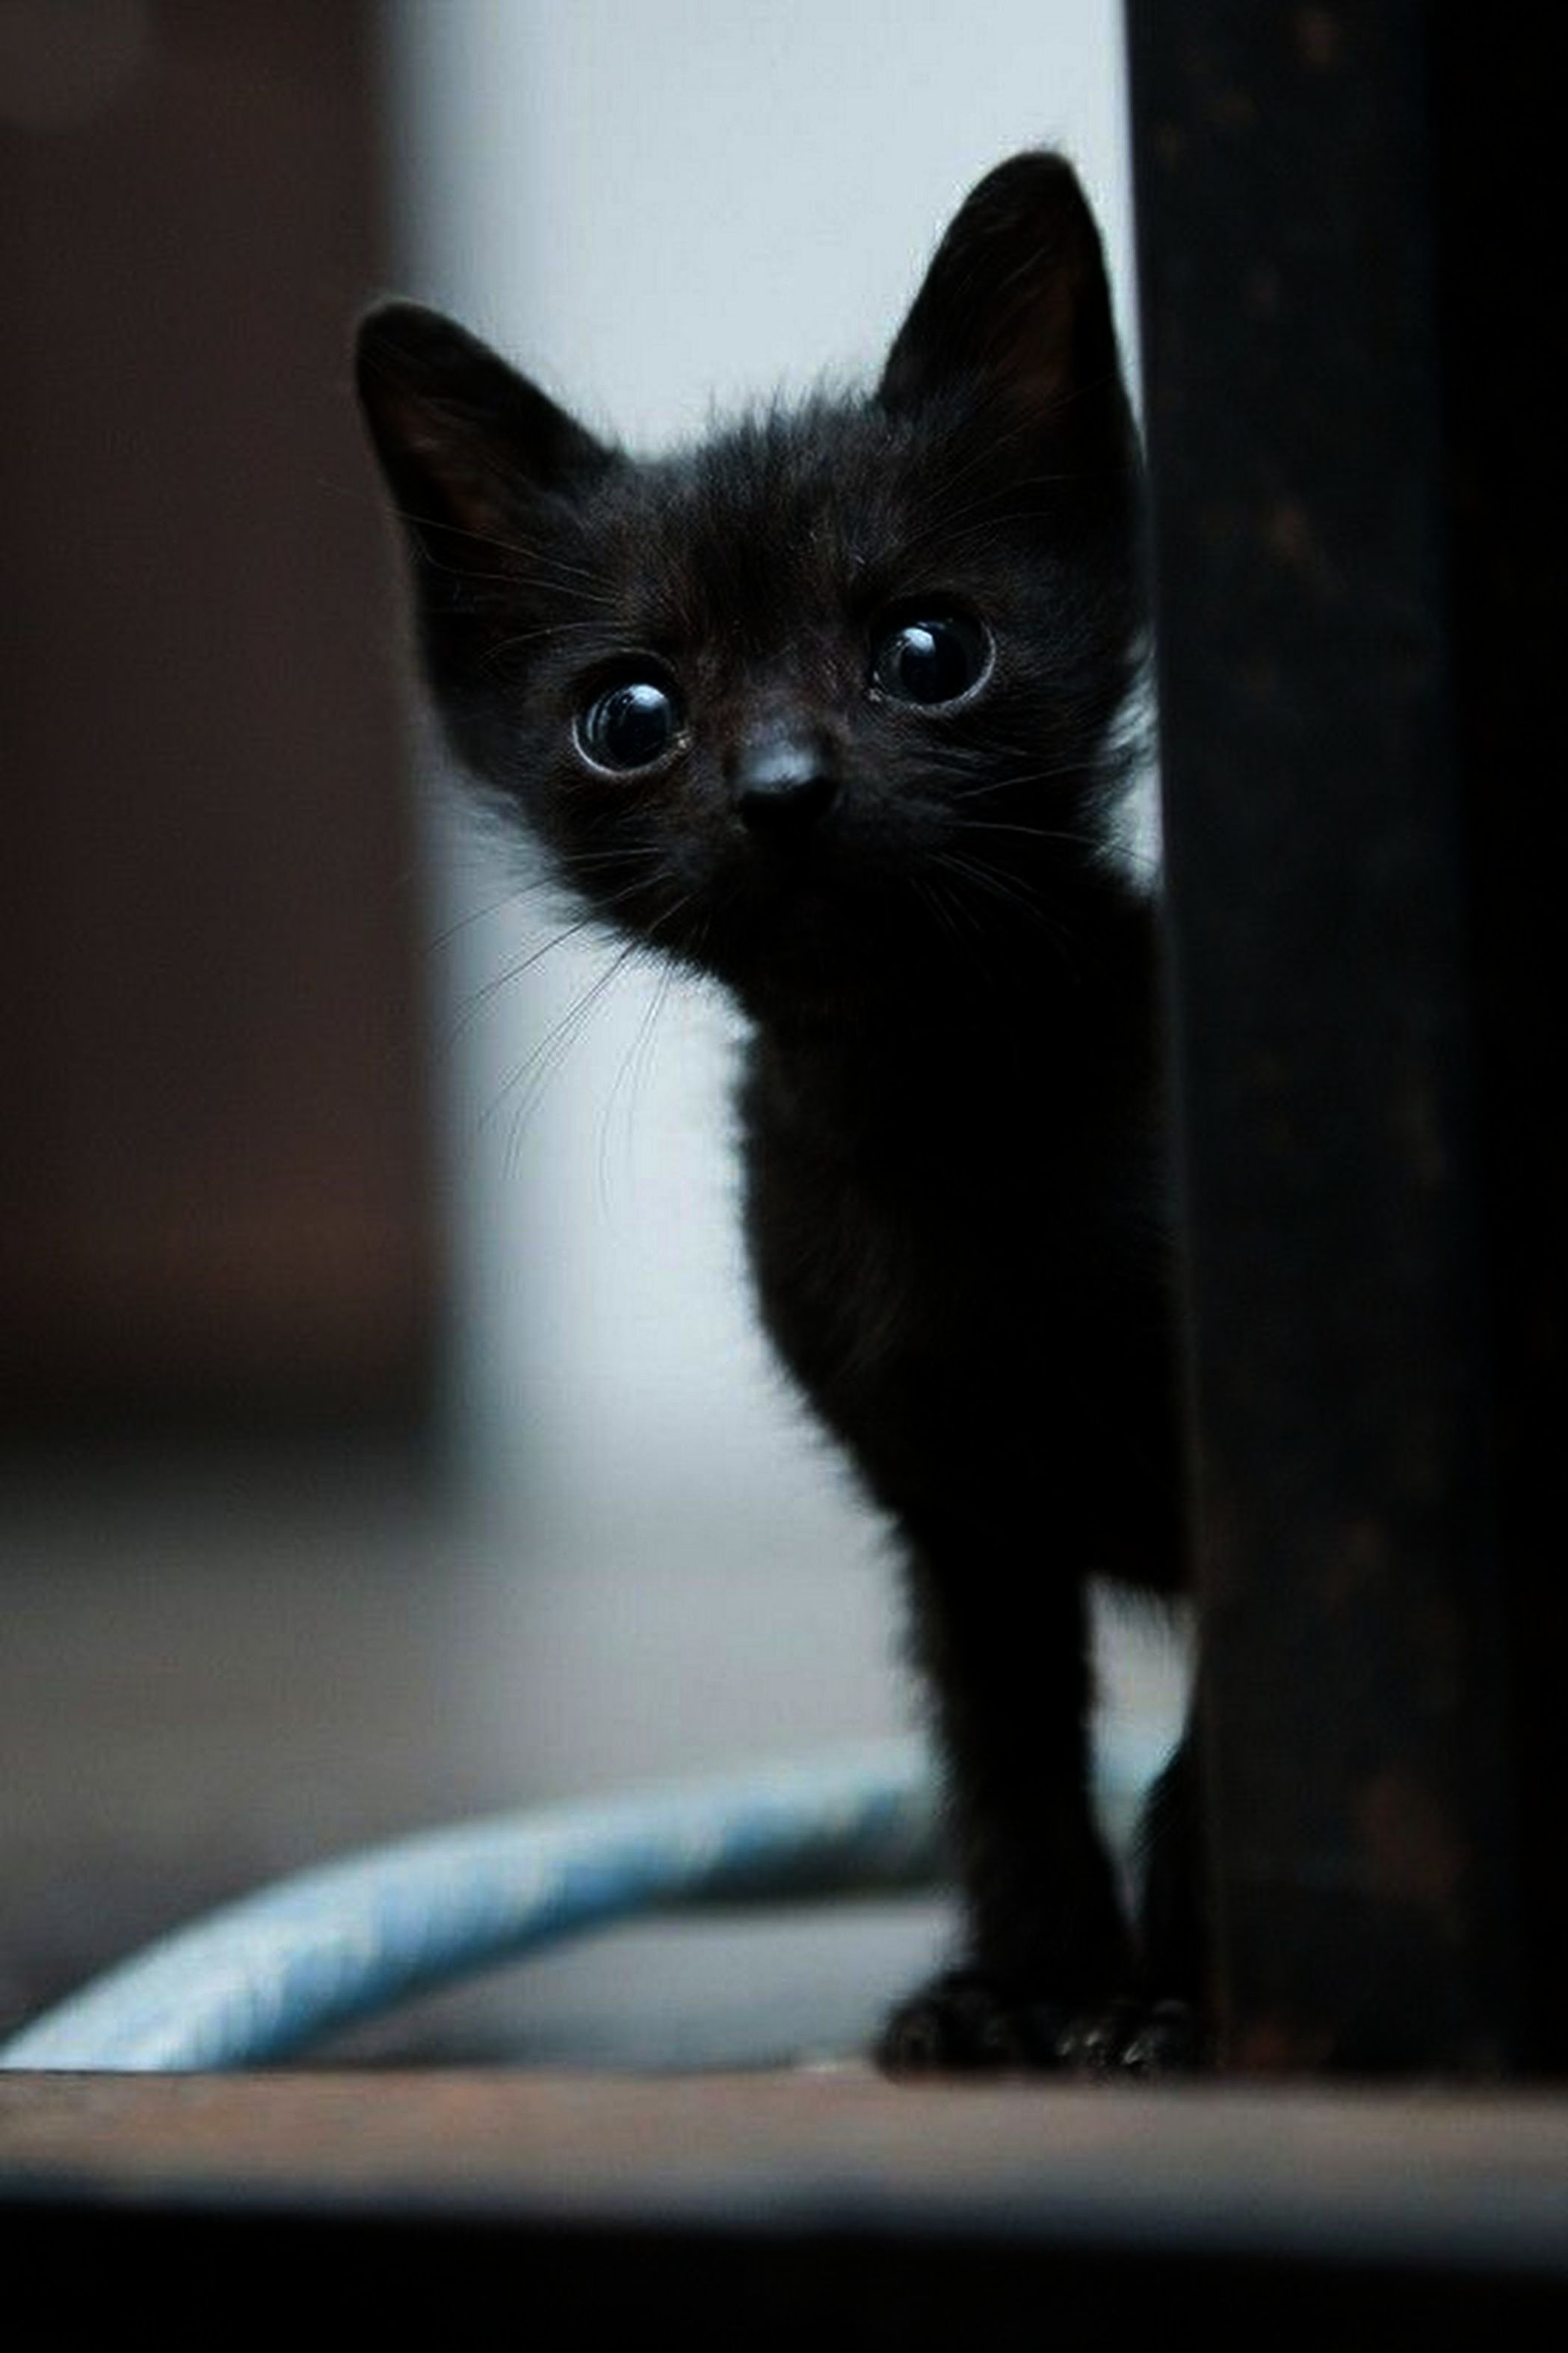 Ahhh Kittens For Sale In Ct Excellent Animaux Adorables Animaux Droles Chats Et Chatons